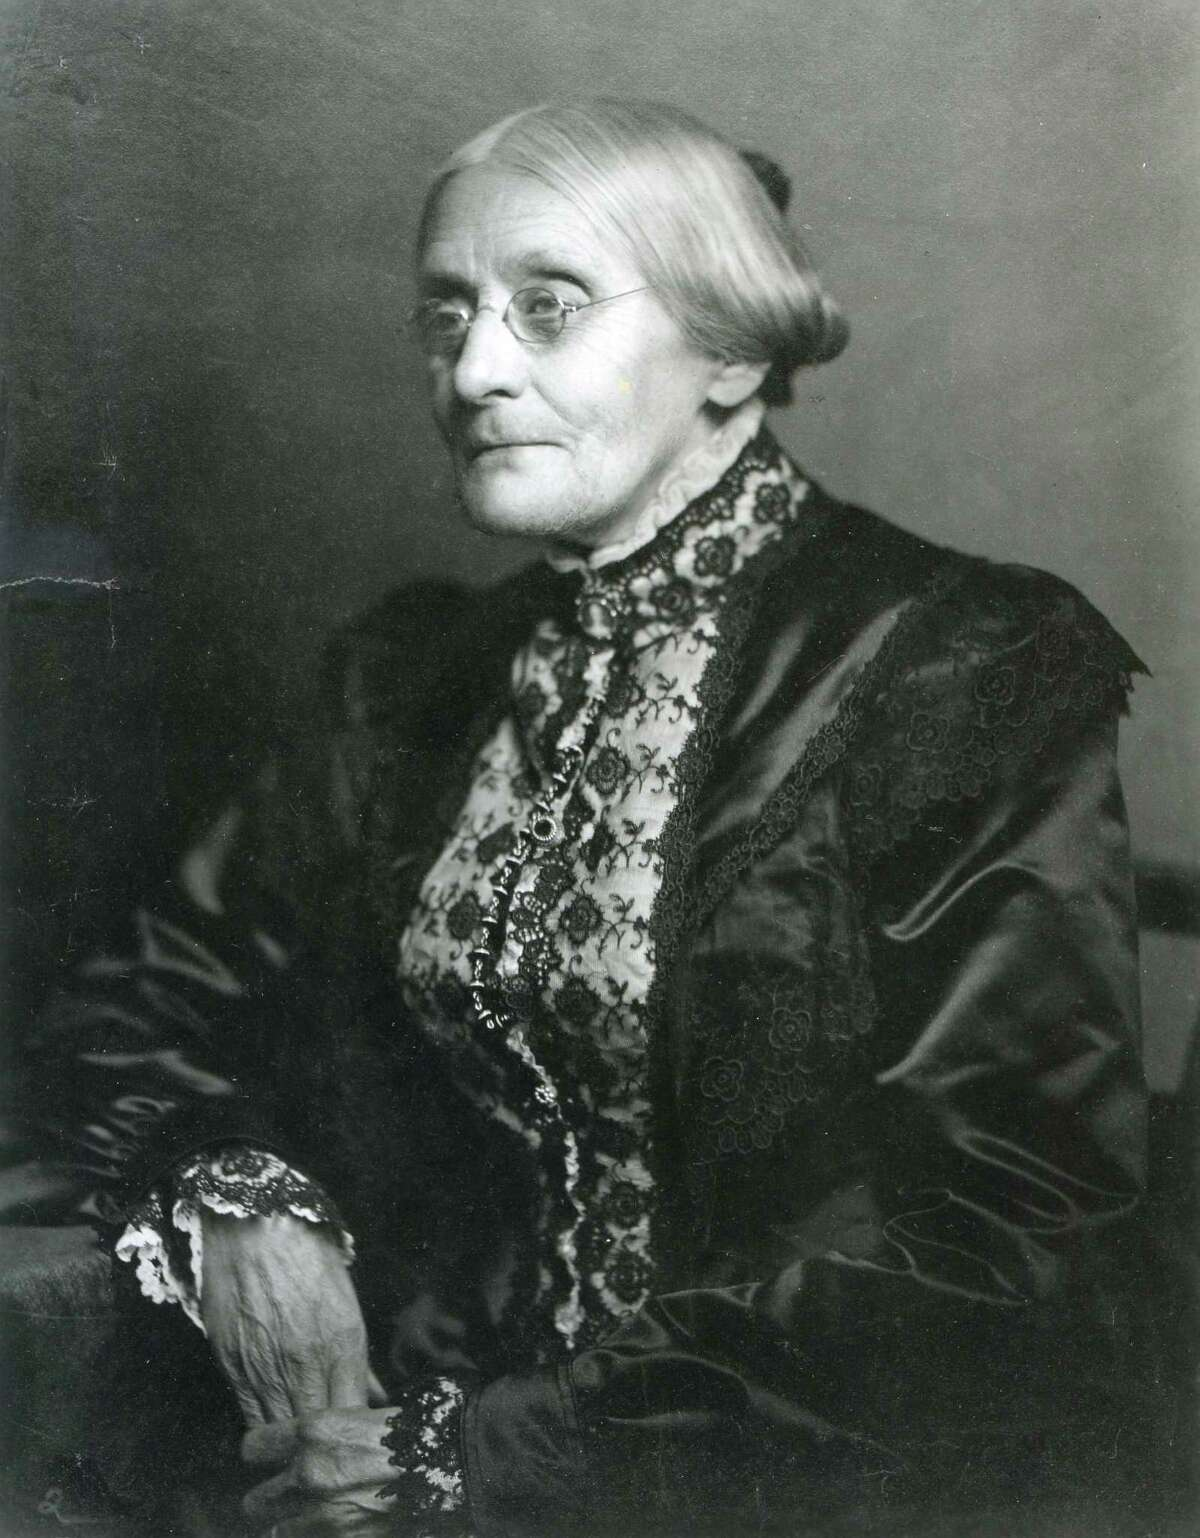 Susan B. Anthony, though not from the Northwest, still impacted the region when she became the first woman to address the Washington Territorial Legislature in 1871, along with Abigail Scott Duniway, according to historylink.org. Days later, the two women -- both women's rights leaders -- would help found the Washington Woman Suffrage Association.